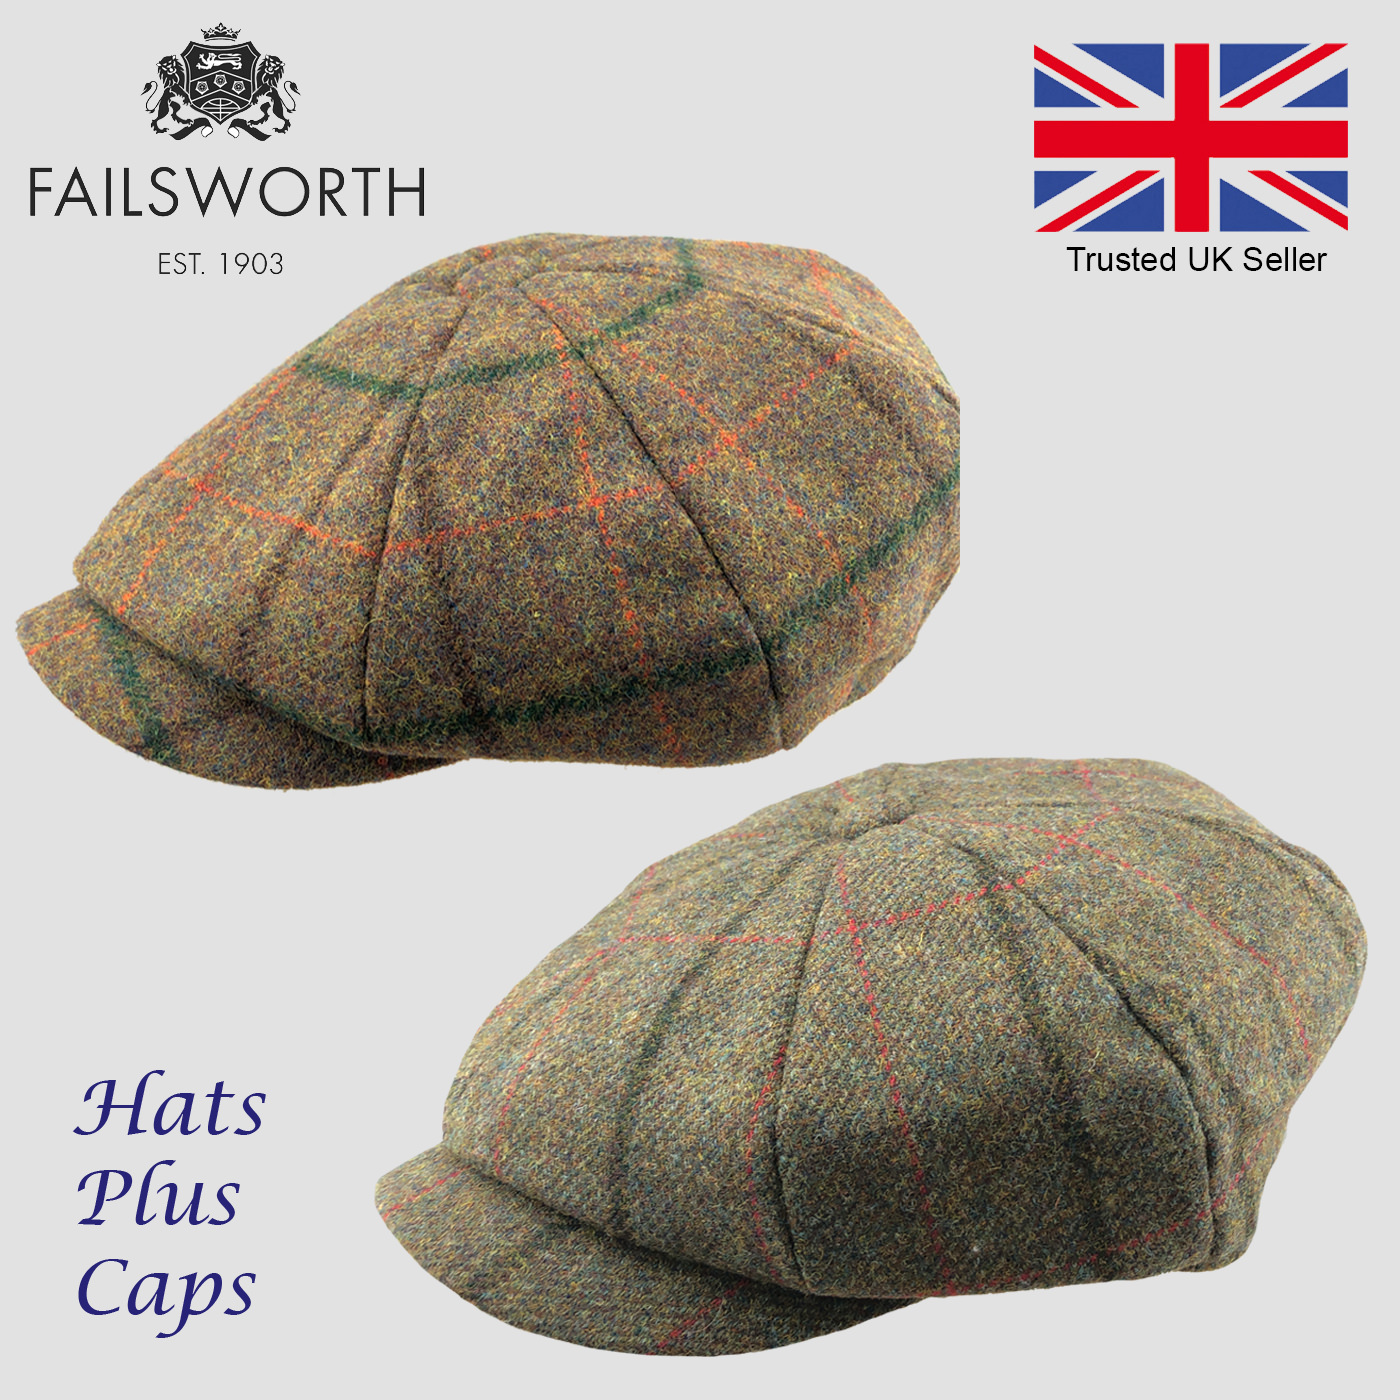 3a03c6dd Details about Failsworth Alfie Peaky Blinders Newsboy Cap English Tweed 100%  Wool Country Hat